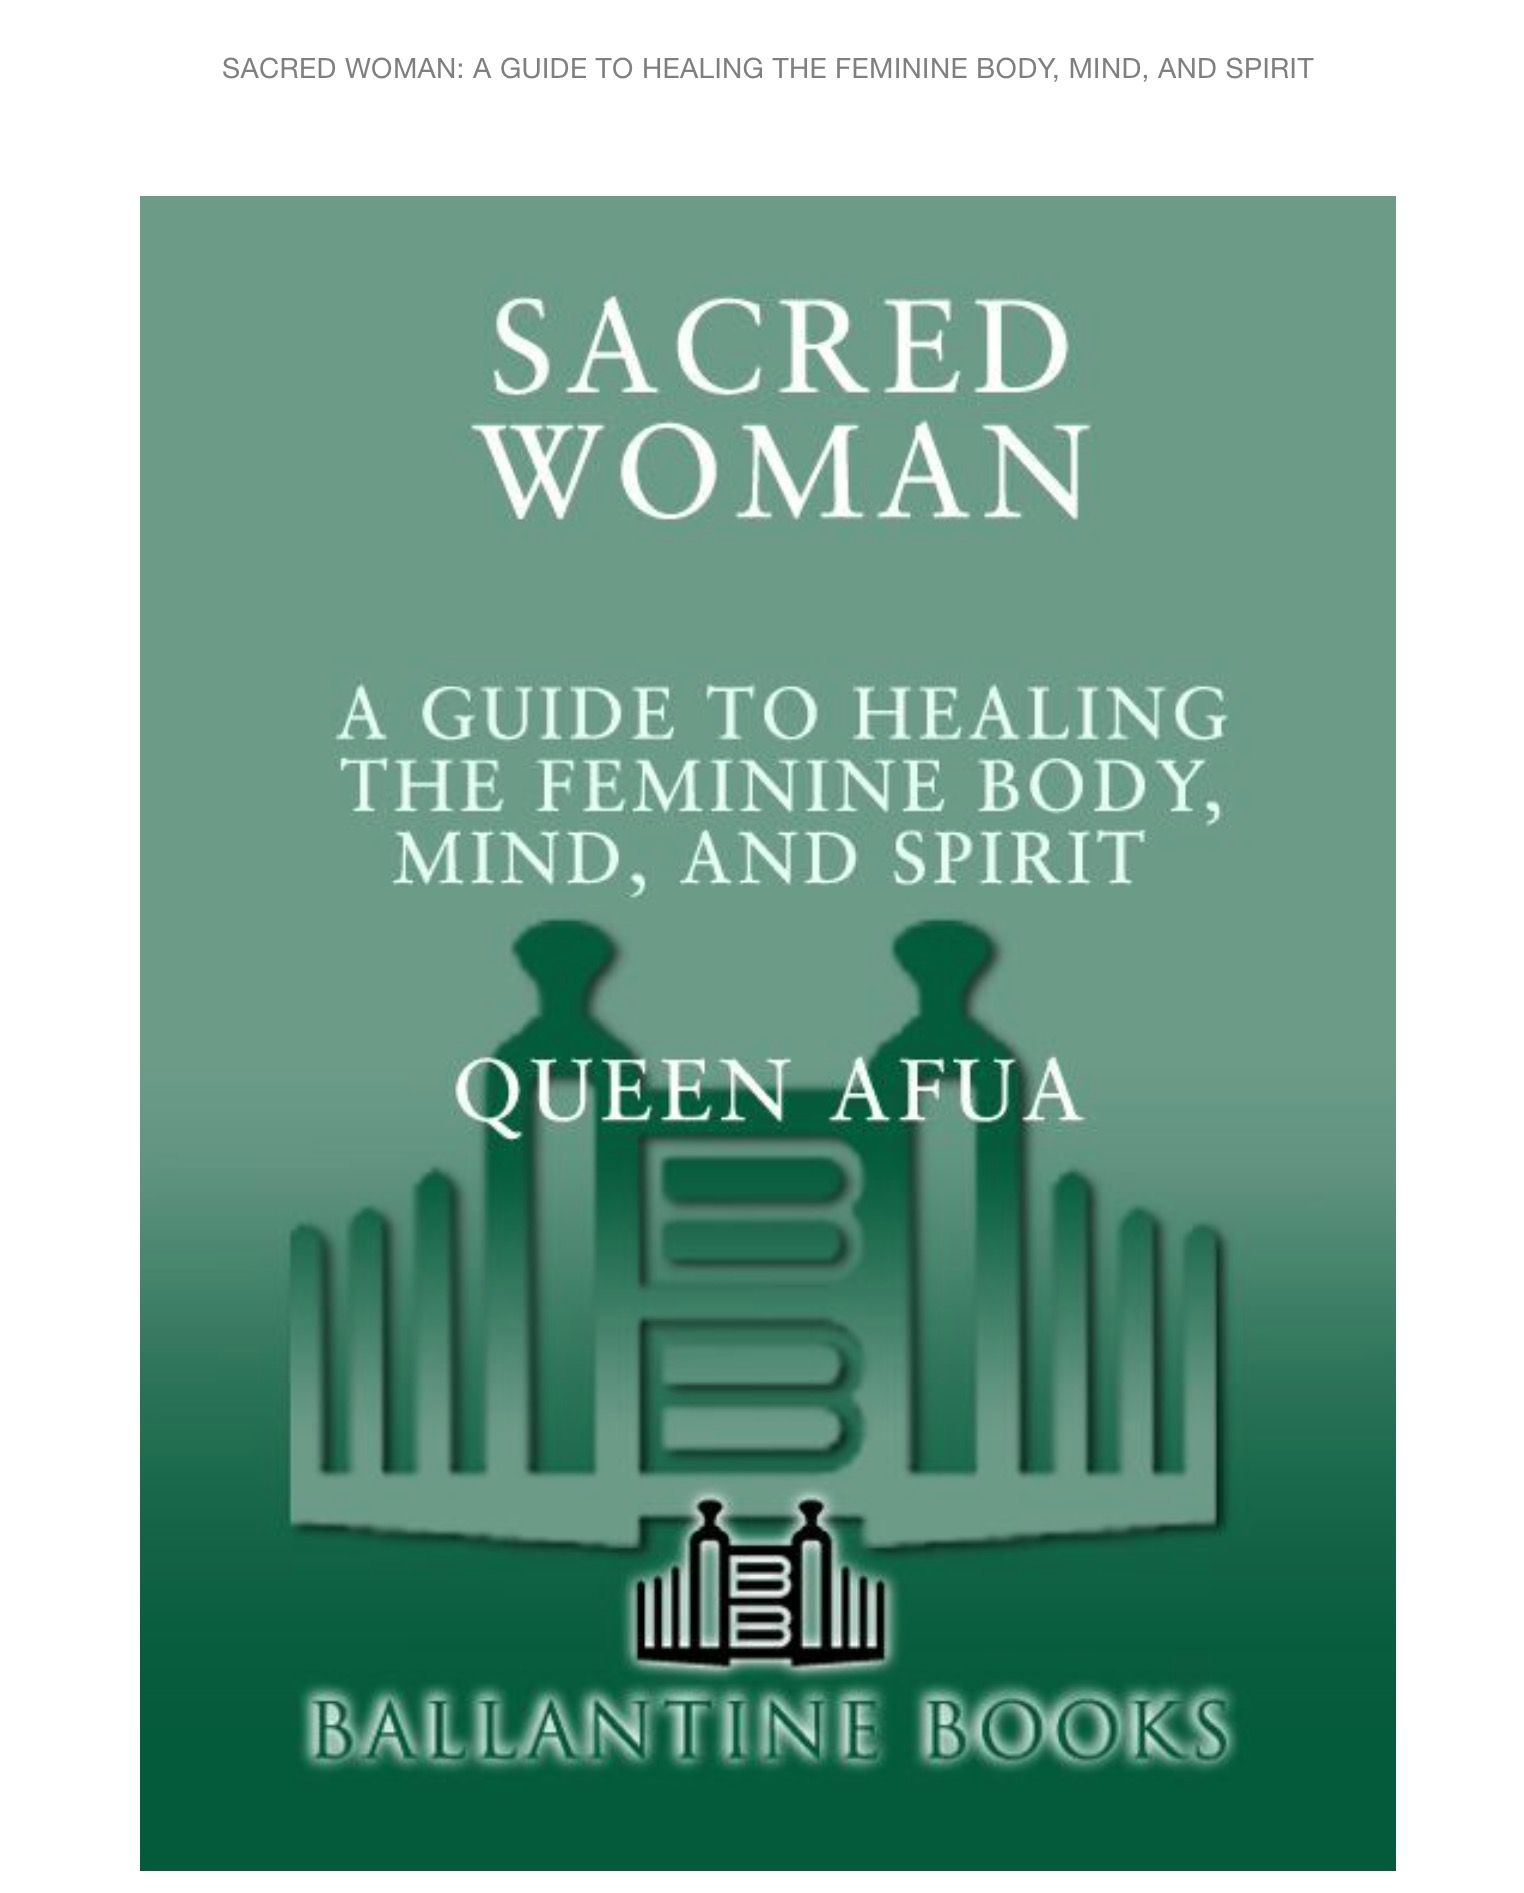 Queen Afua | Books in 2019 | Inspirational books, Reading